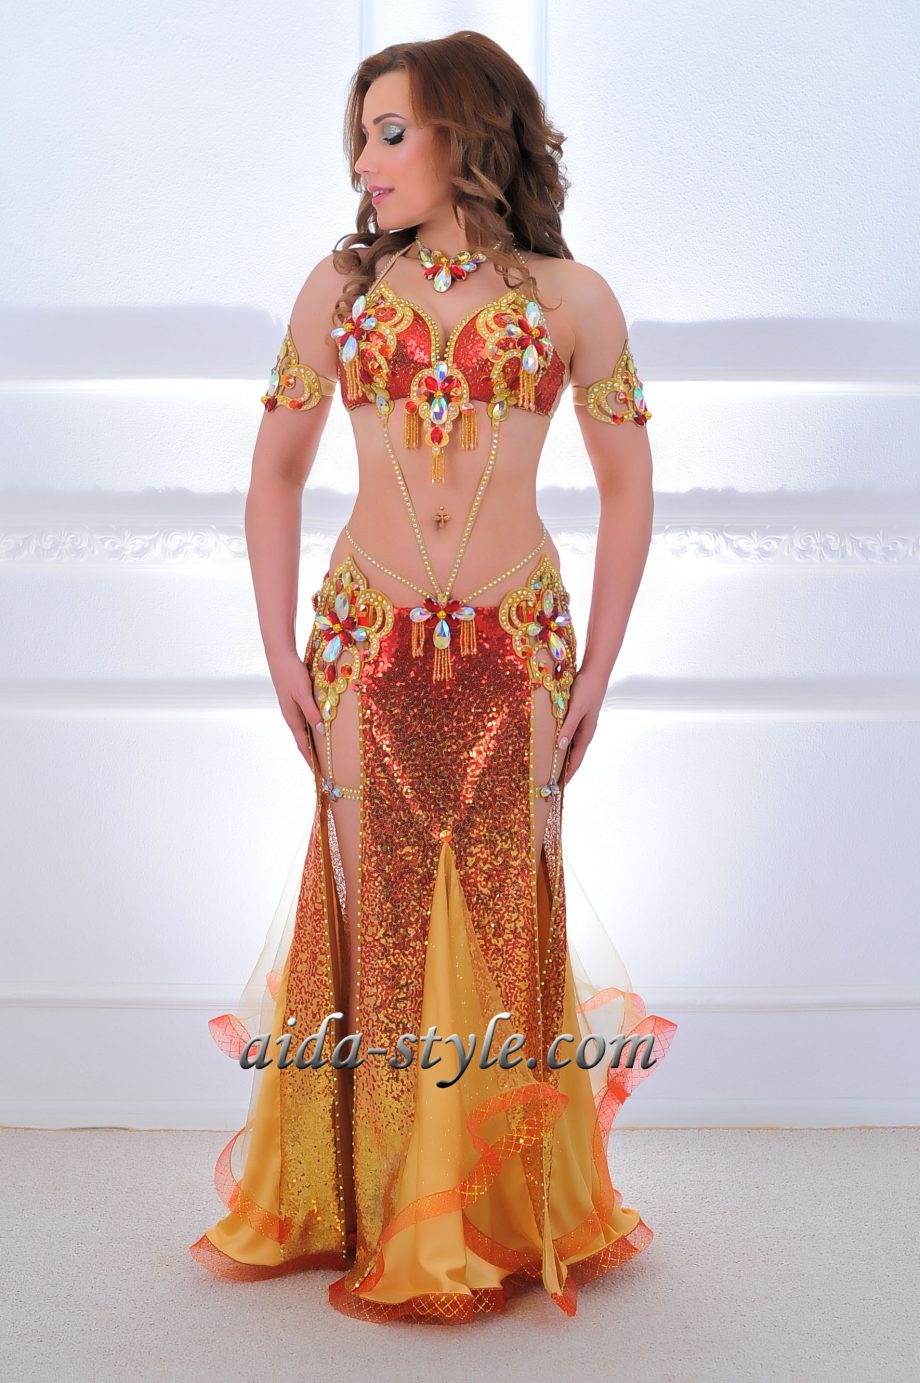 red belly dancing costume